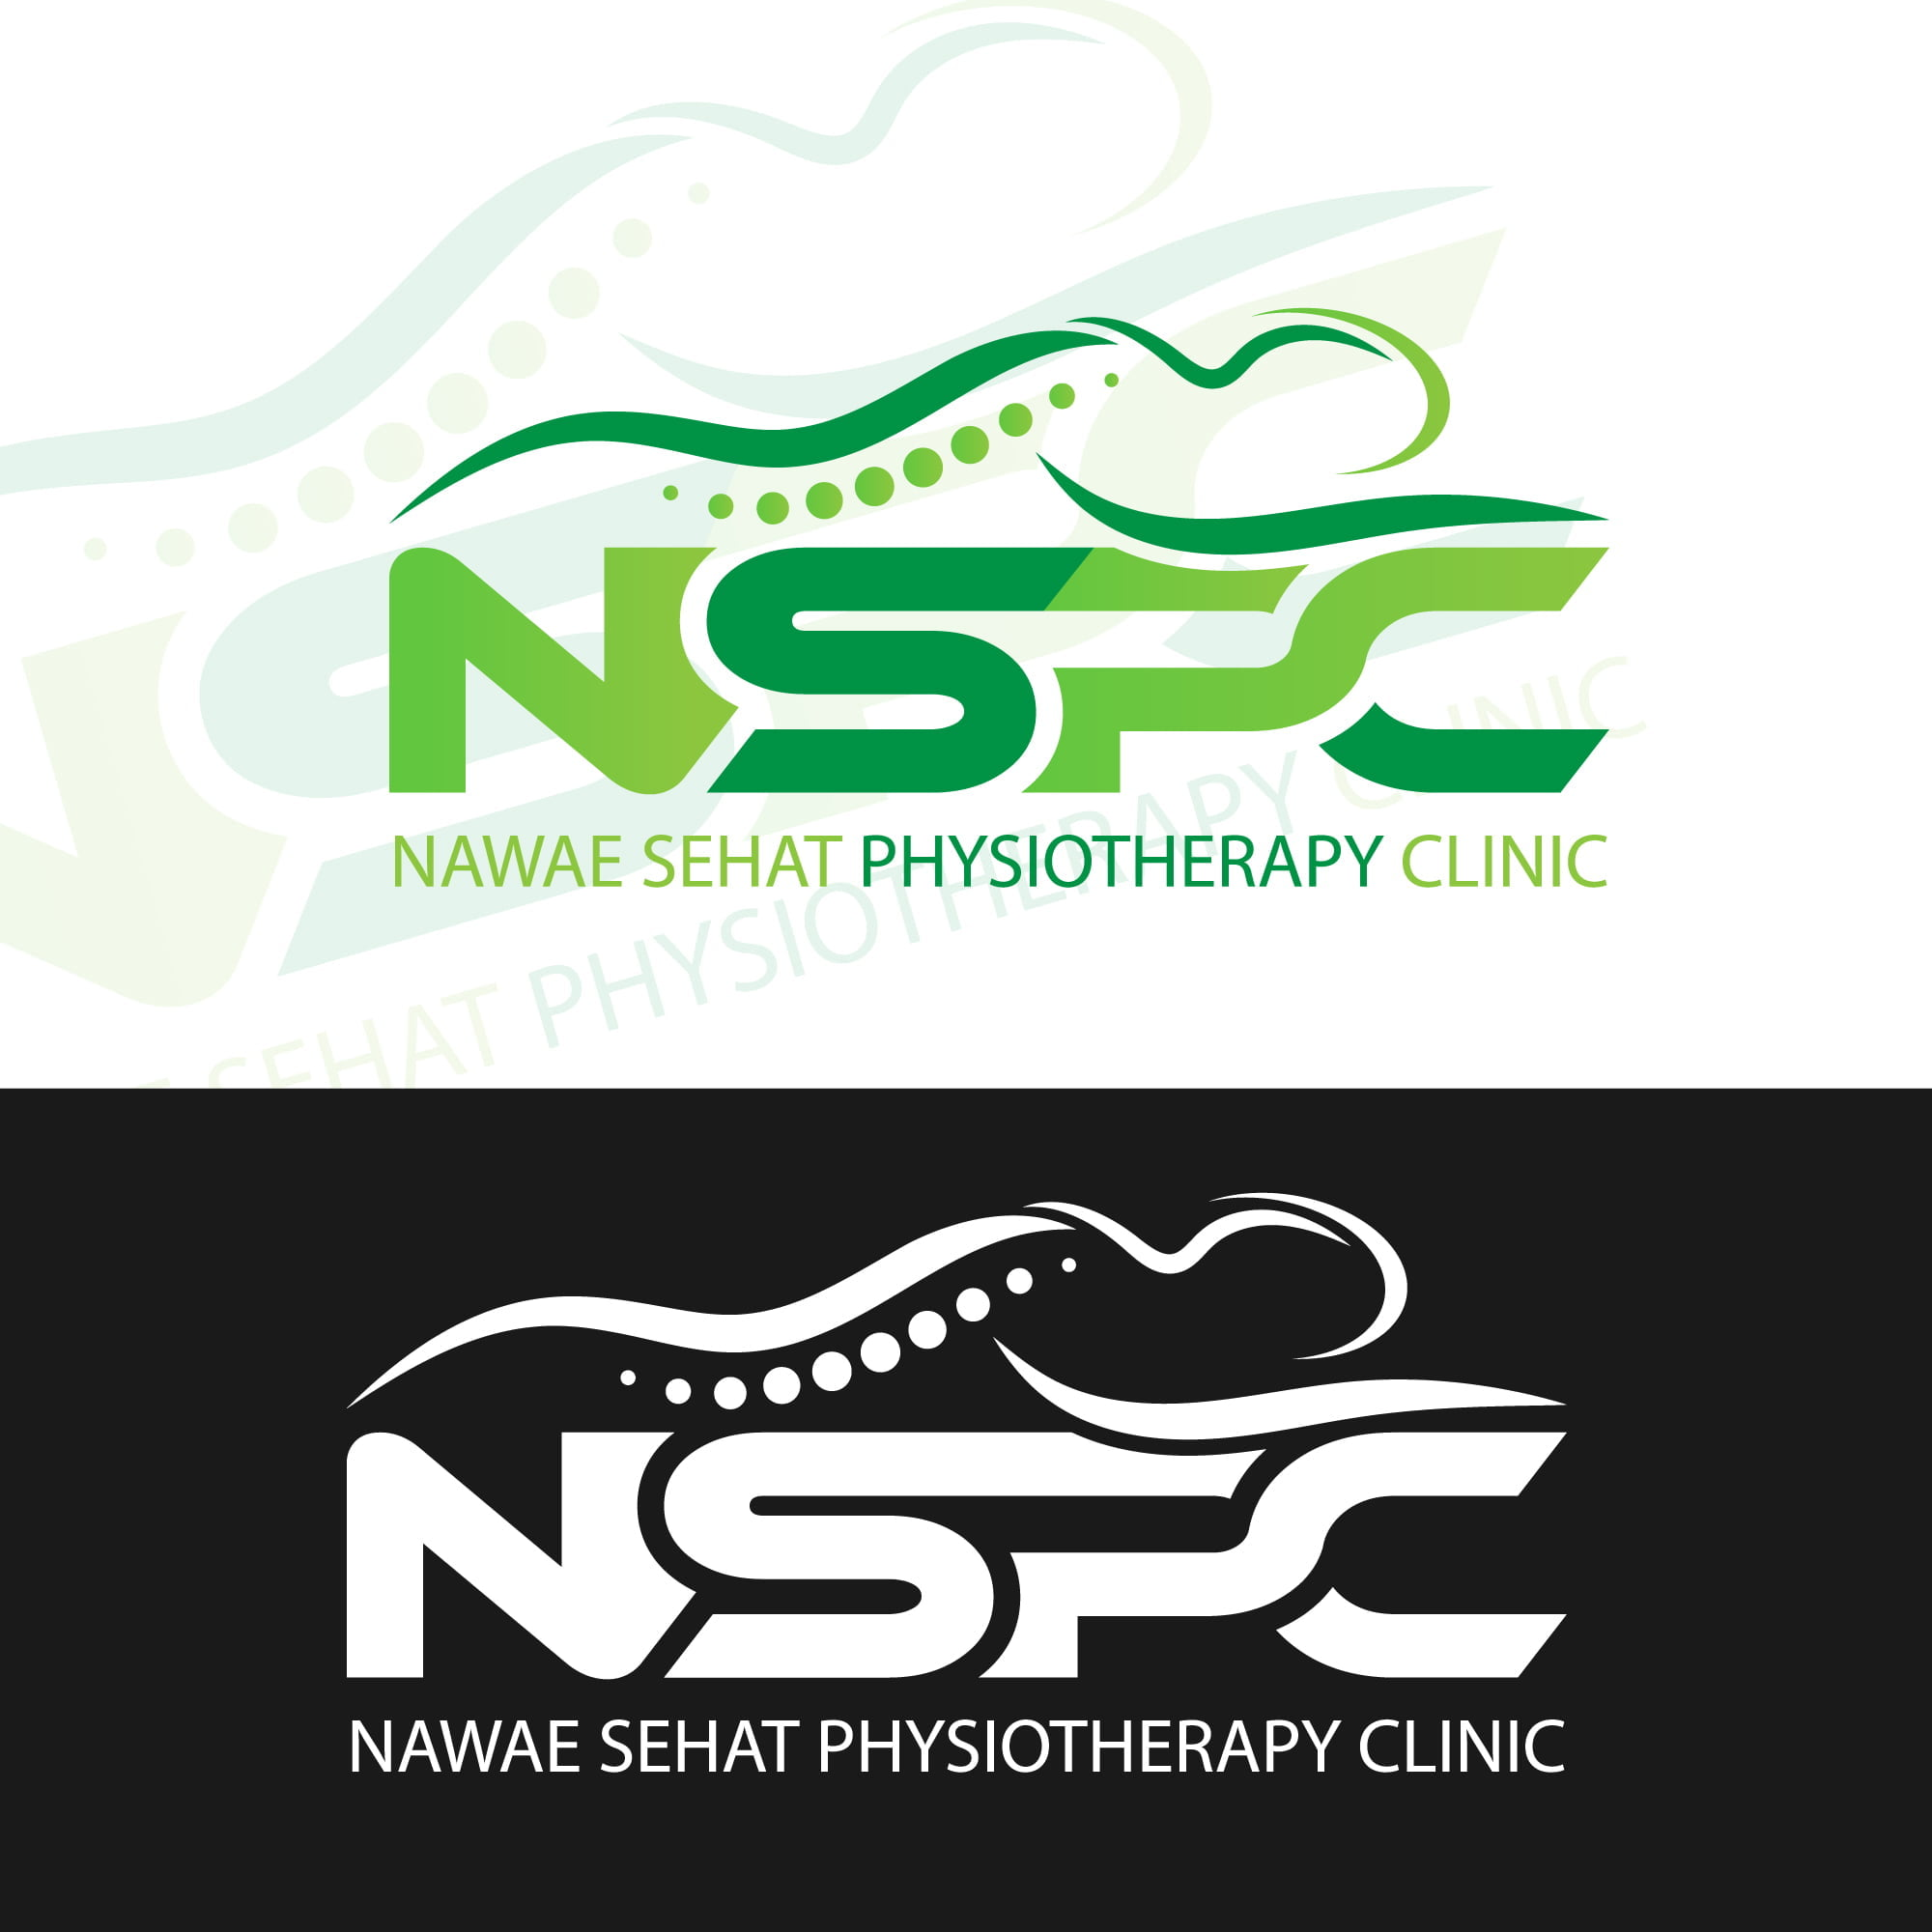 Physiotherapy LogoTransparent-Logo Download